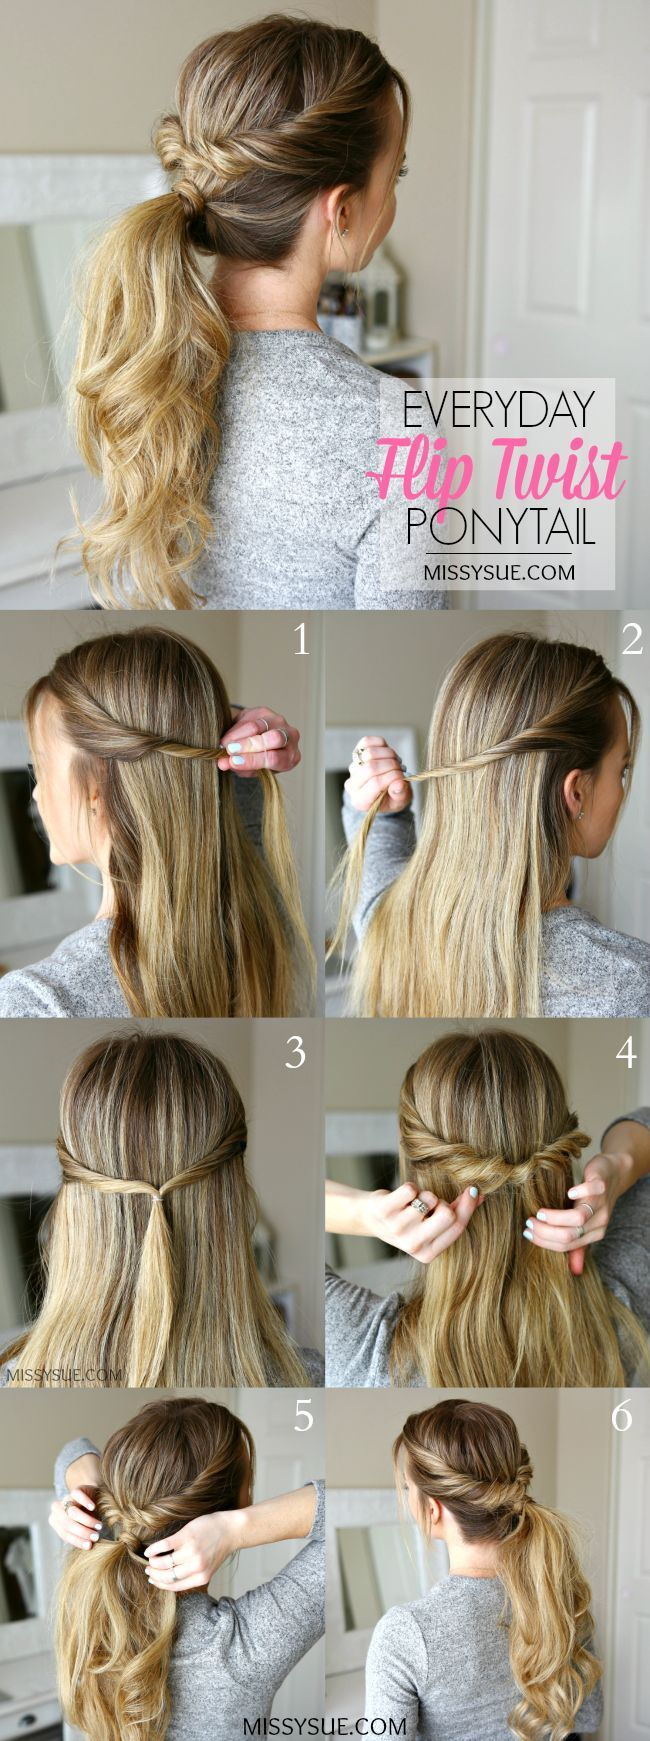 Cute easy hairstyles that kids can do - I Could Probably Do The Top Thingy In My Hair Once My Hairs Been Dyed